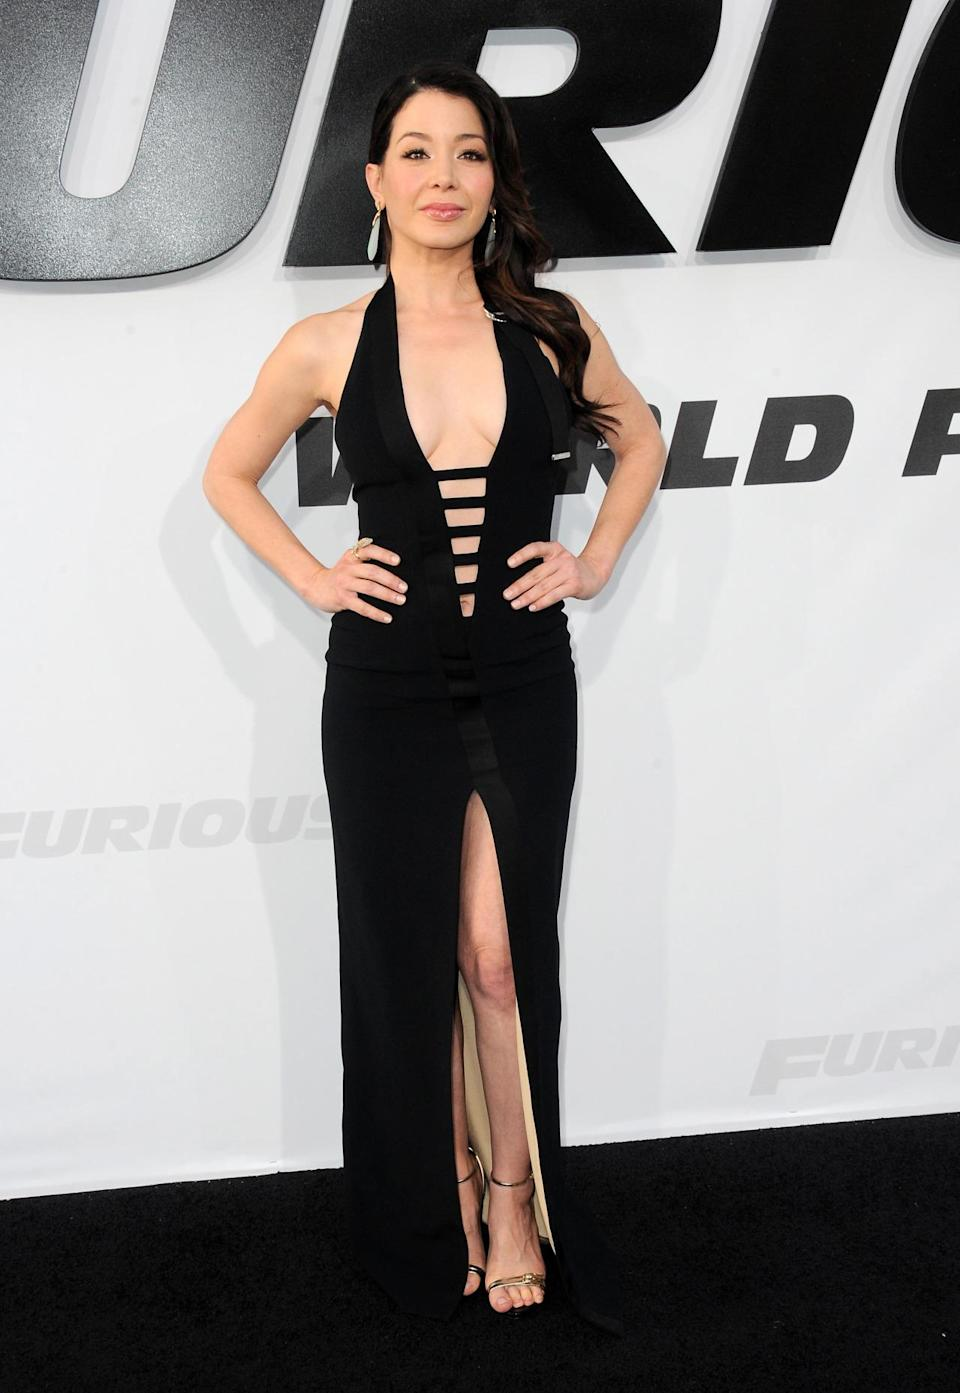 Wearing a dress that Cara Delevingne, Lala Anthony, and Georgia May Jagger have worn before her, actress Katherine Castro pulled off the black Mugler dress with deep V and high slit despite the deep (and intimidatingly gorgeous) competition.